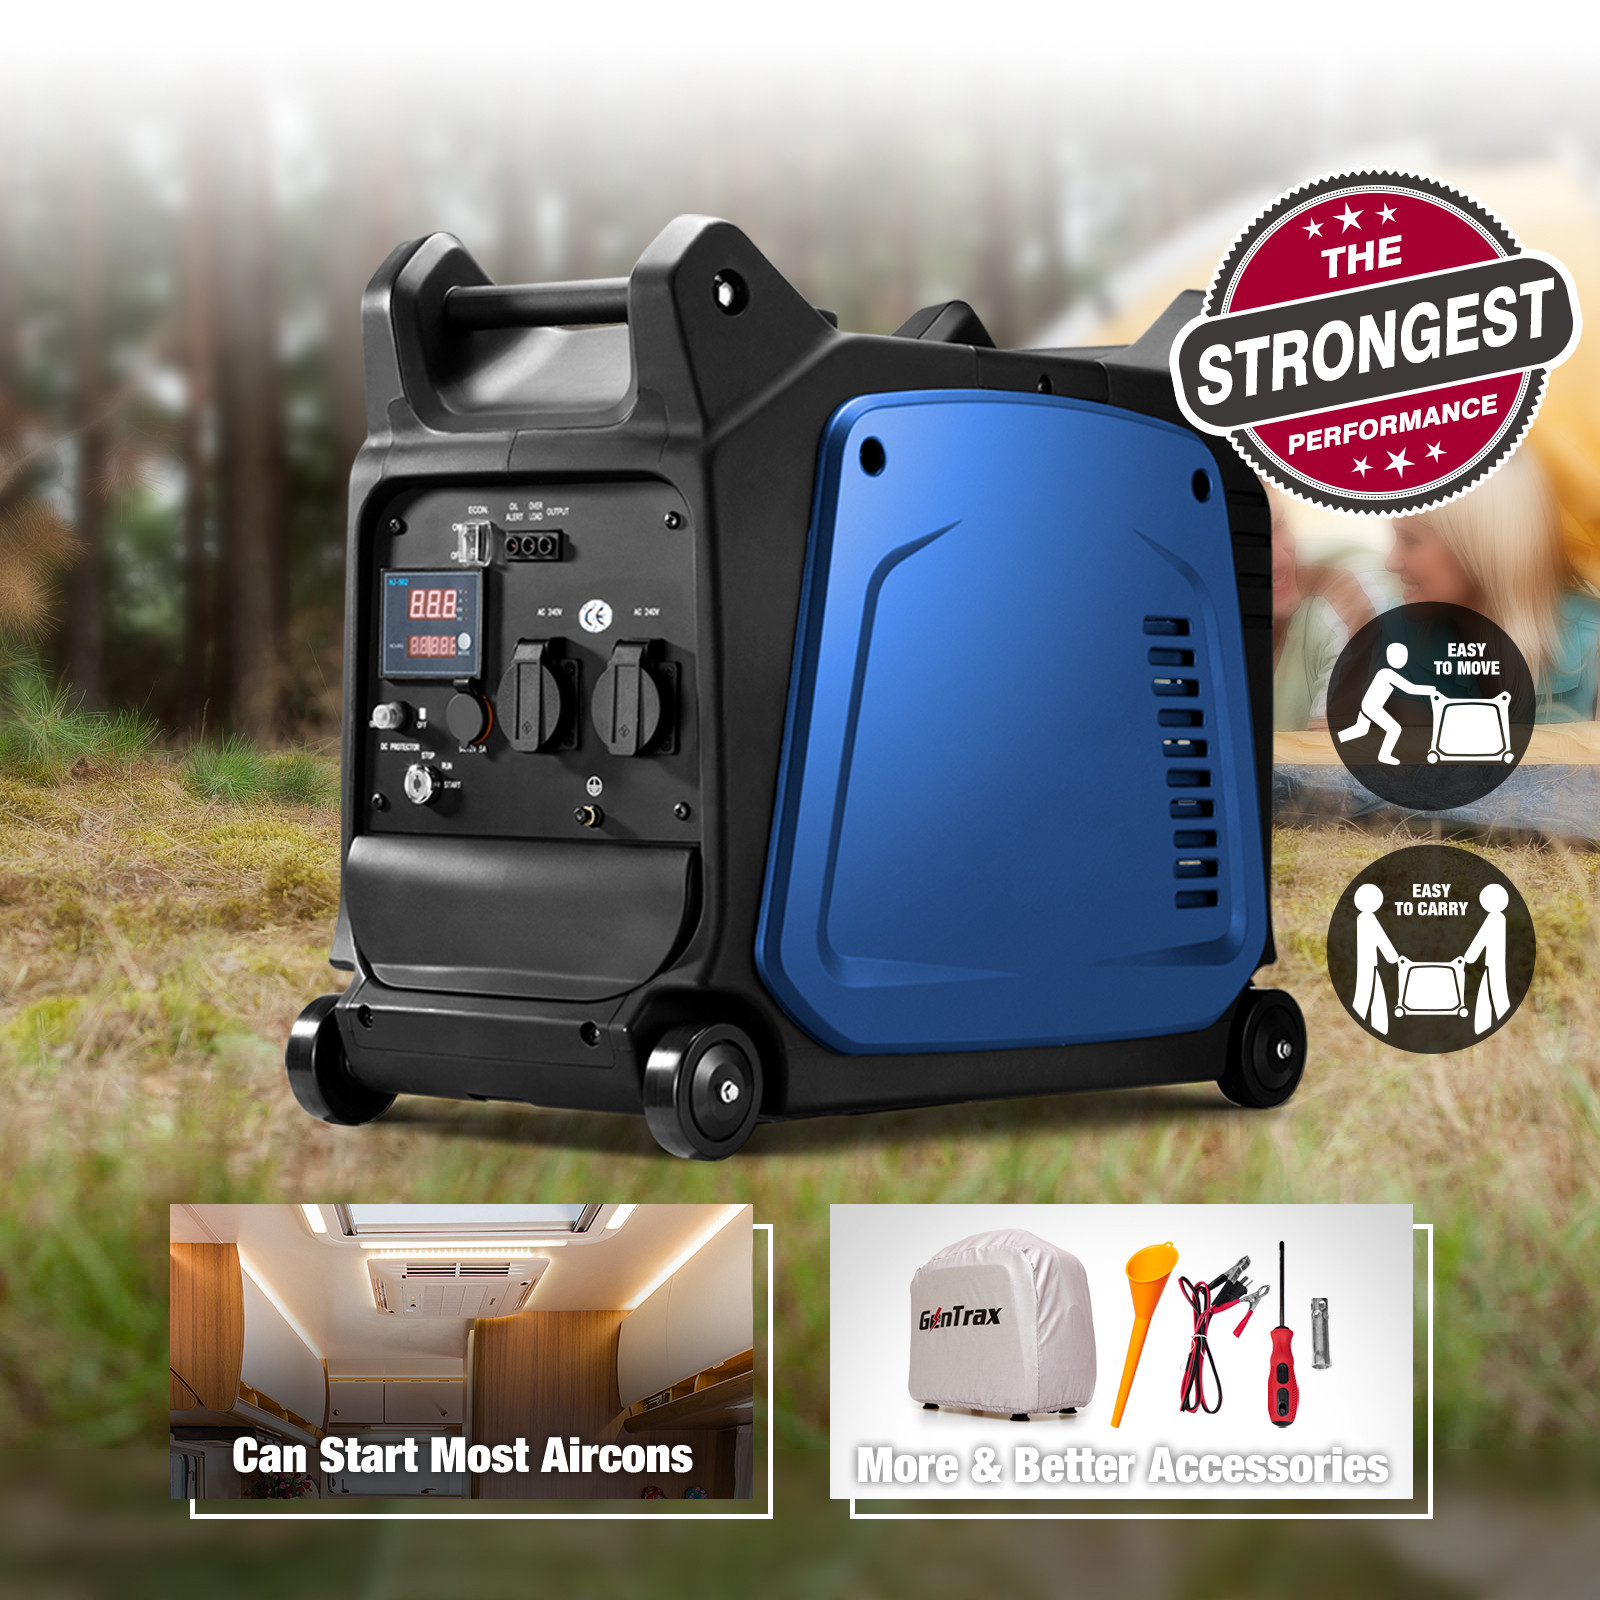 [15%OFF] GenTrax Inverter Generator 3.5KW Max 3.2KW Rated Remote Portable Petrol 3